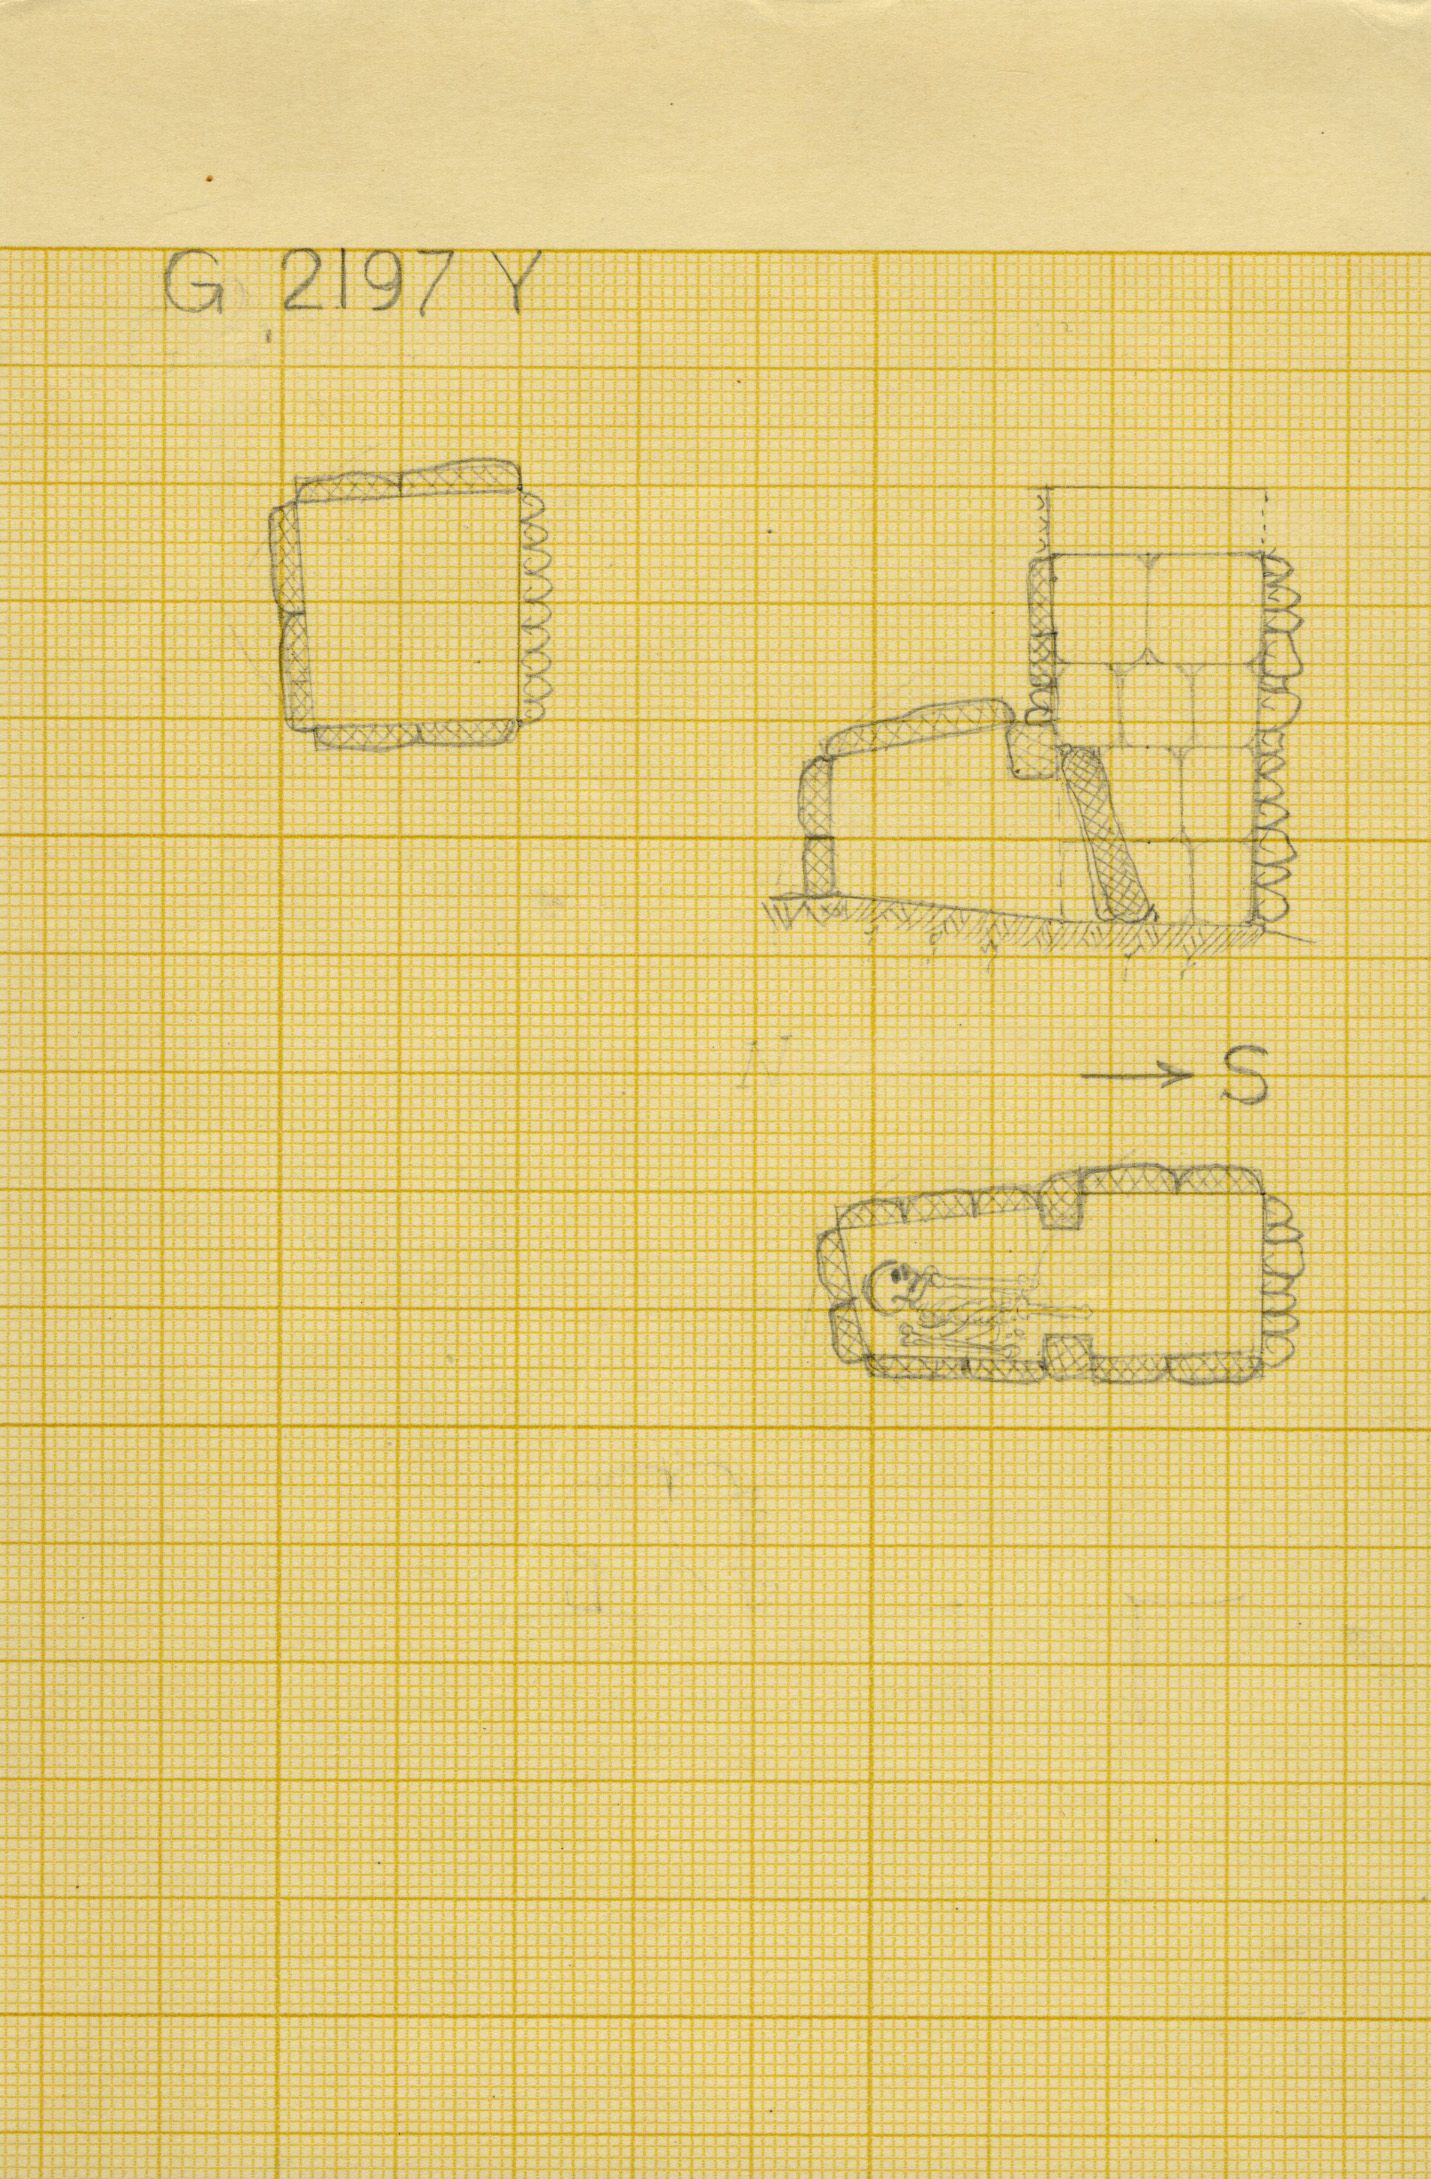 Maps and plans: G 2197, Shaft Y